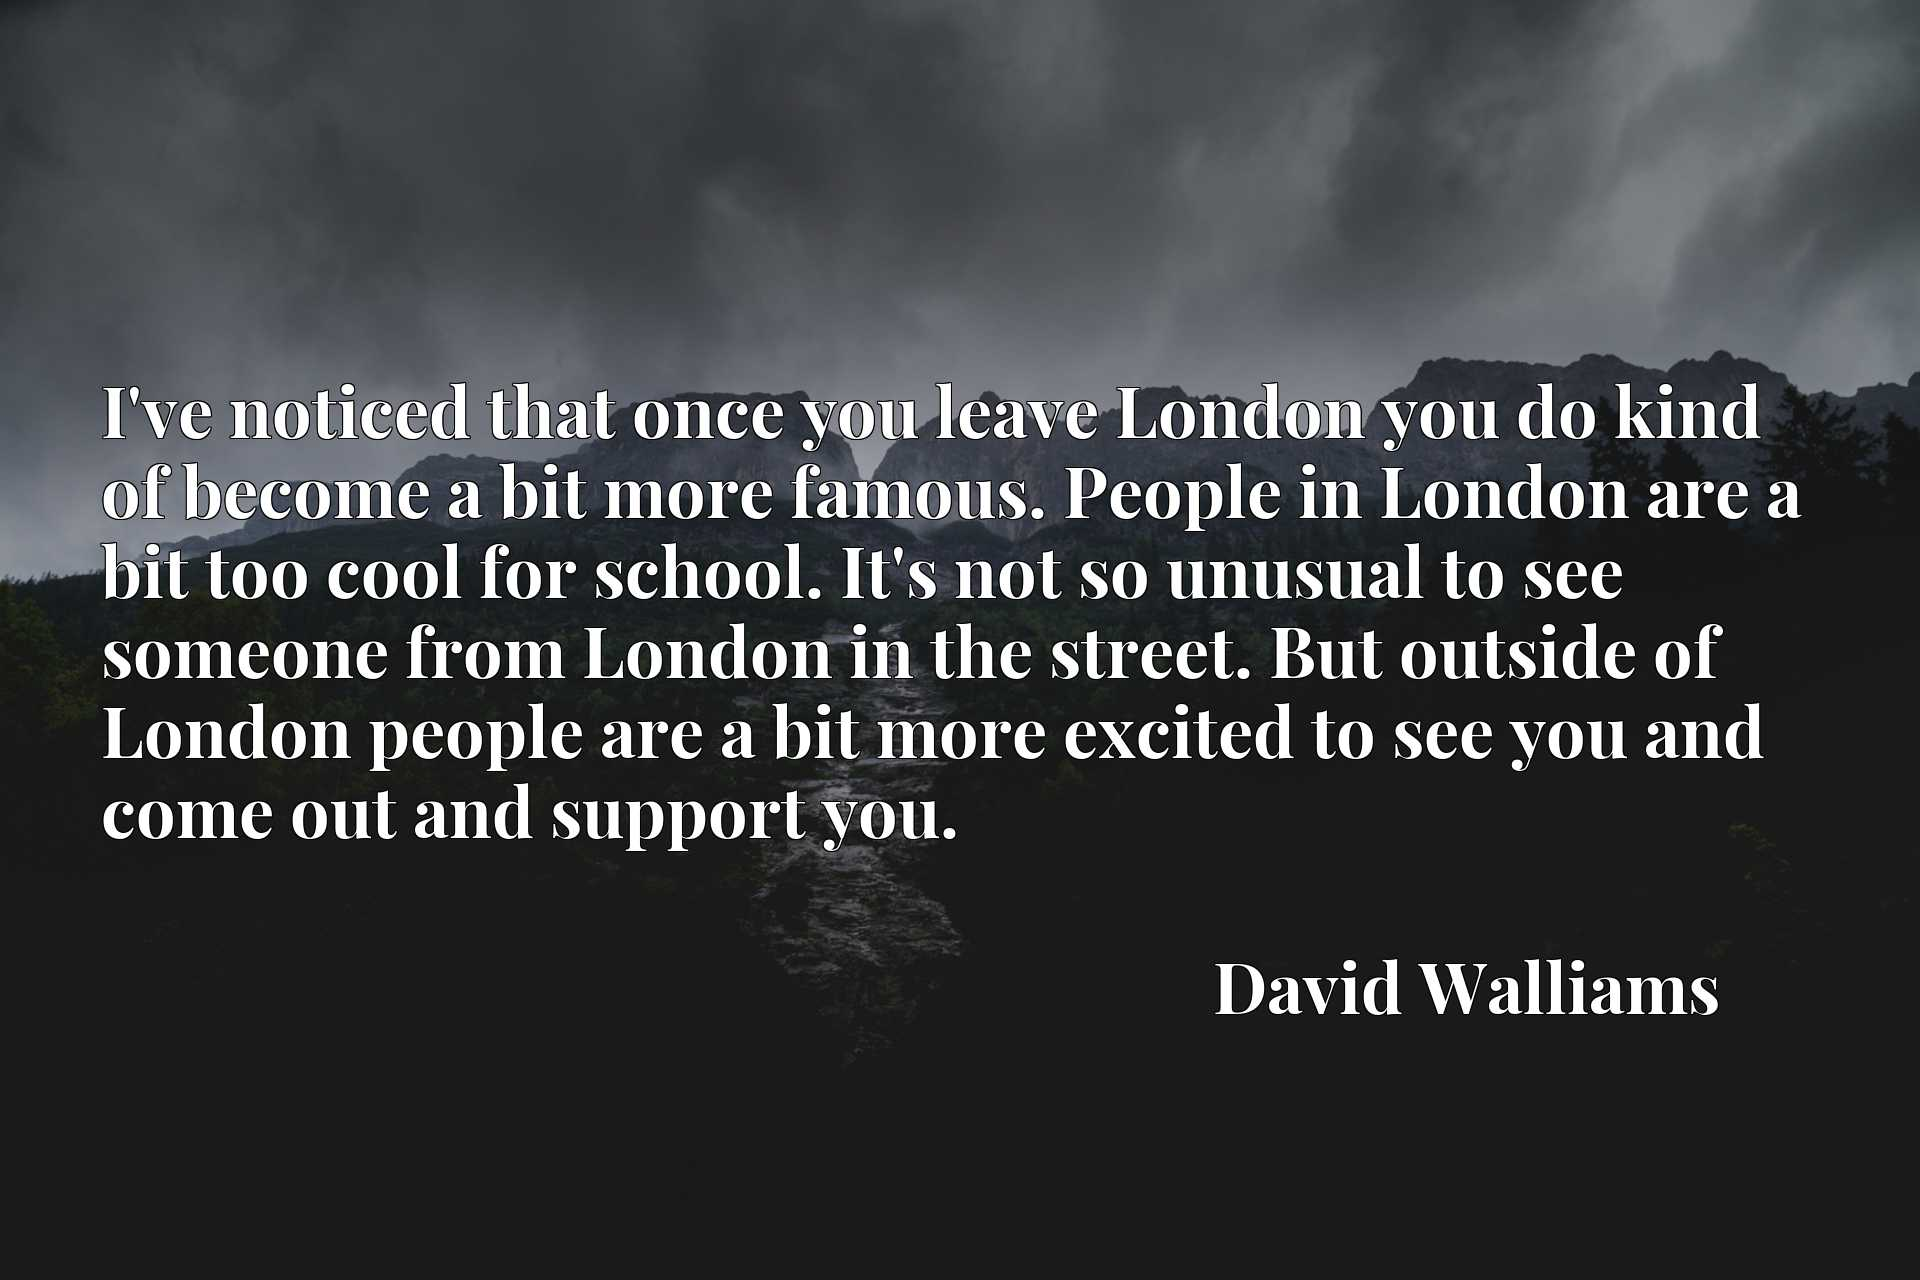 I've noticed that once you leave London you do kind of become a bit more famous. People in London are a bit too cool for school. It's not so unusual to see someone from London in the street. But outside of London people are a bit more excited to see you and come out and support you.